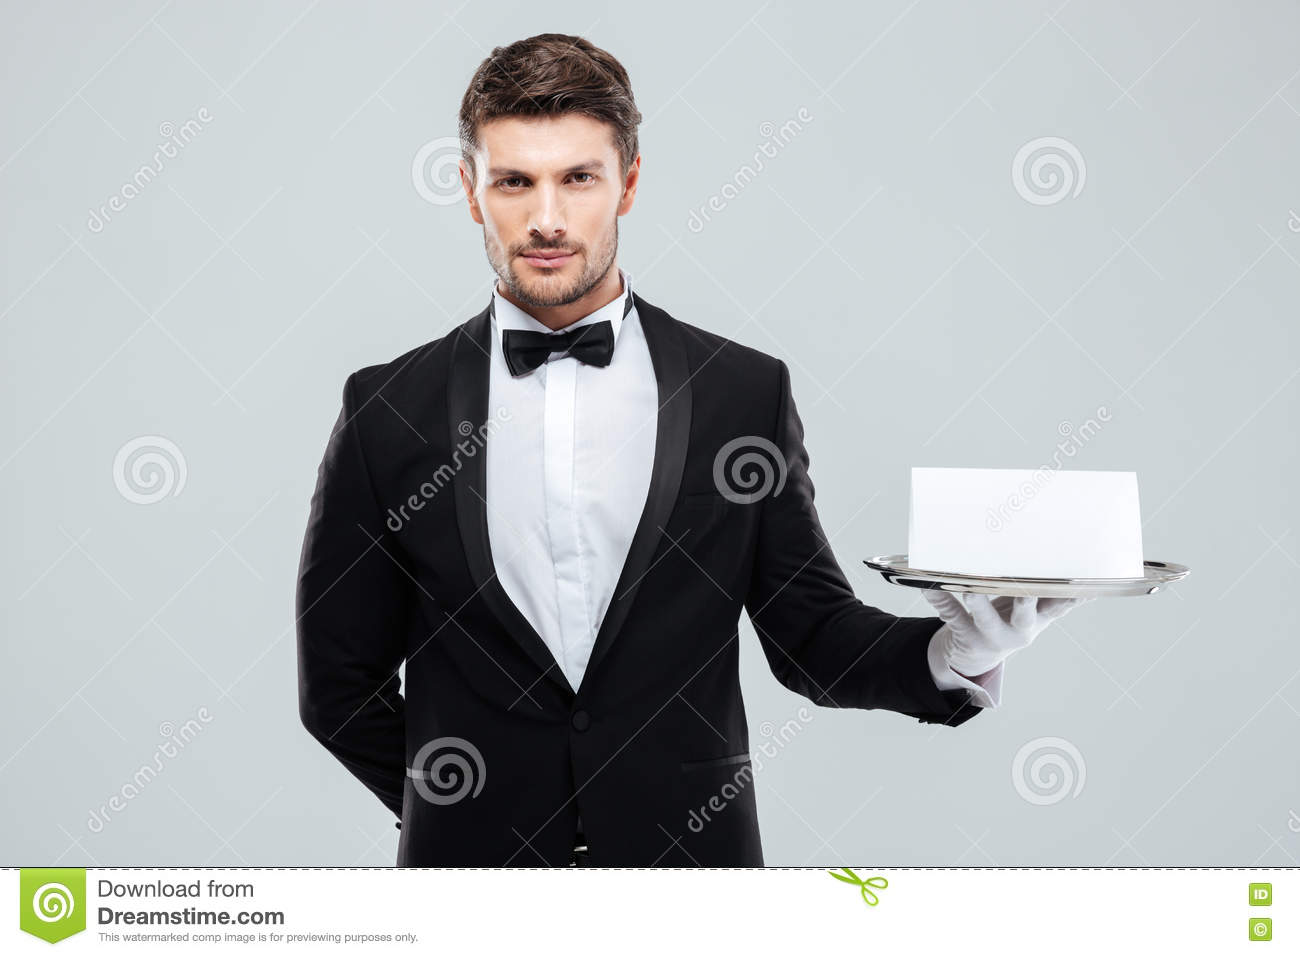 Butler in tuxedo and gloves holding tray with blank card